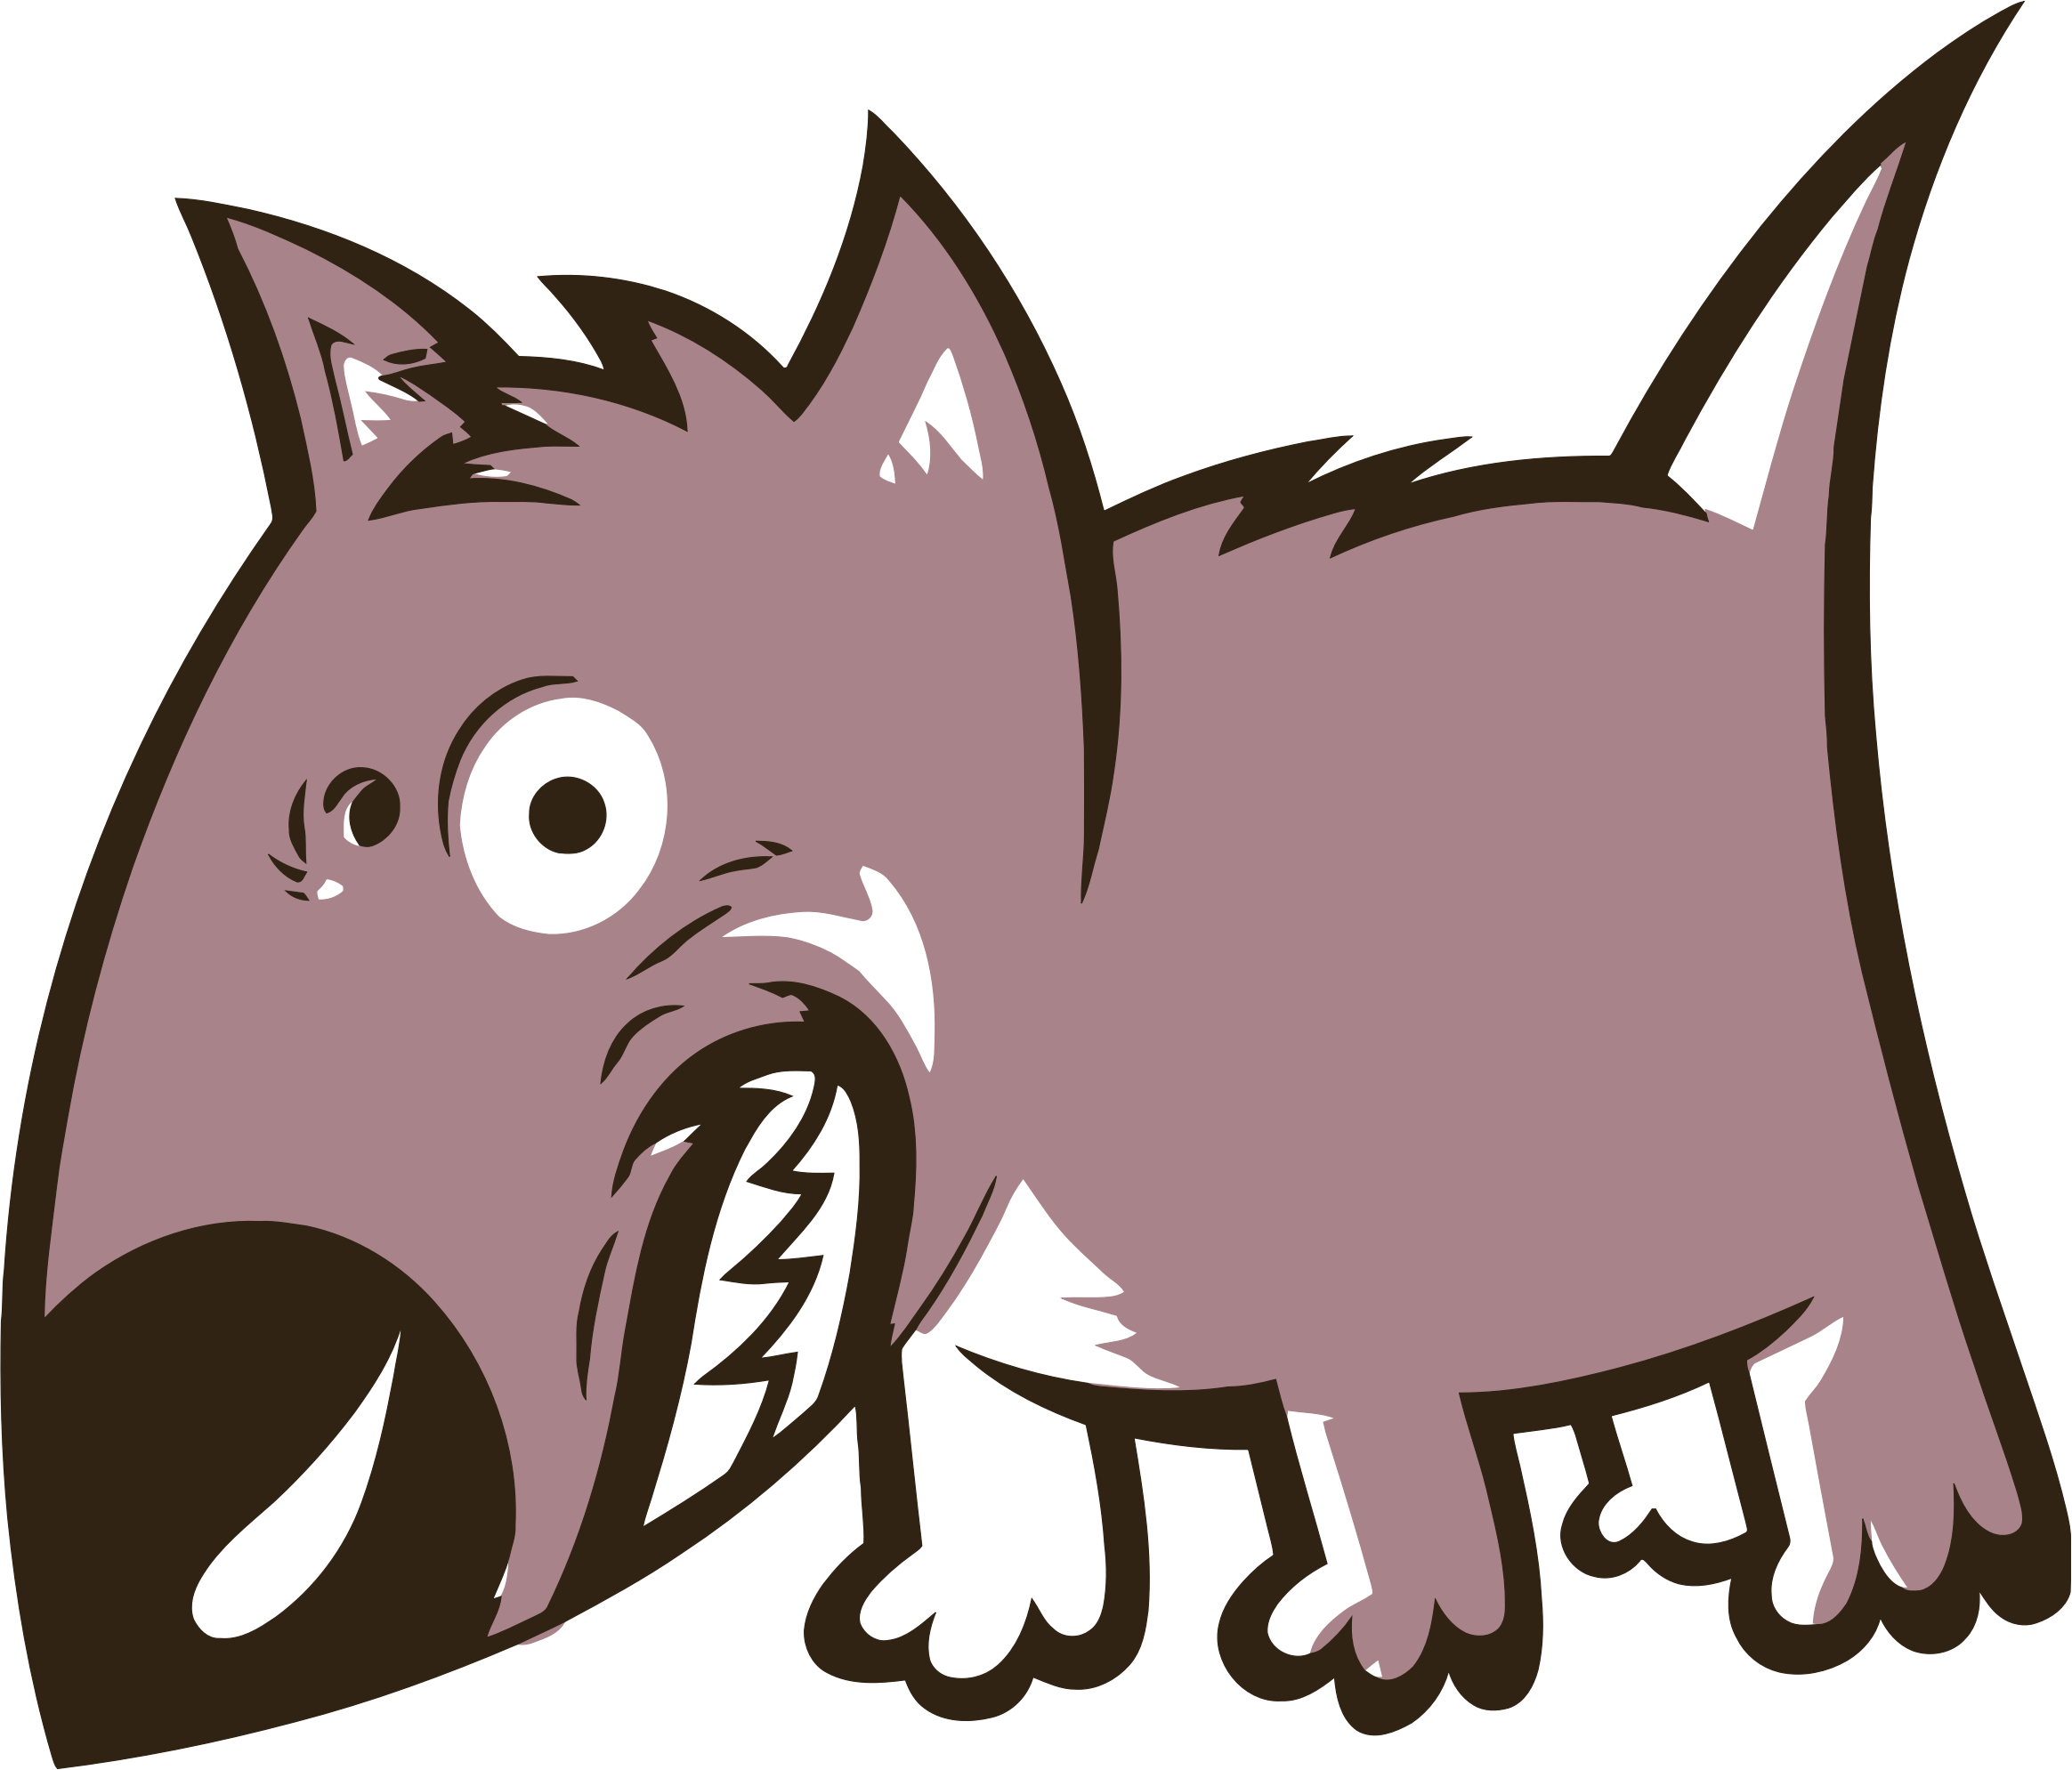 Clipart - Angry Growling Cartoon Dog clip art black and white download